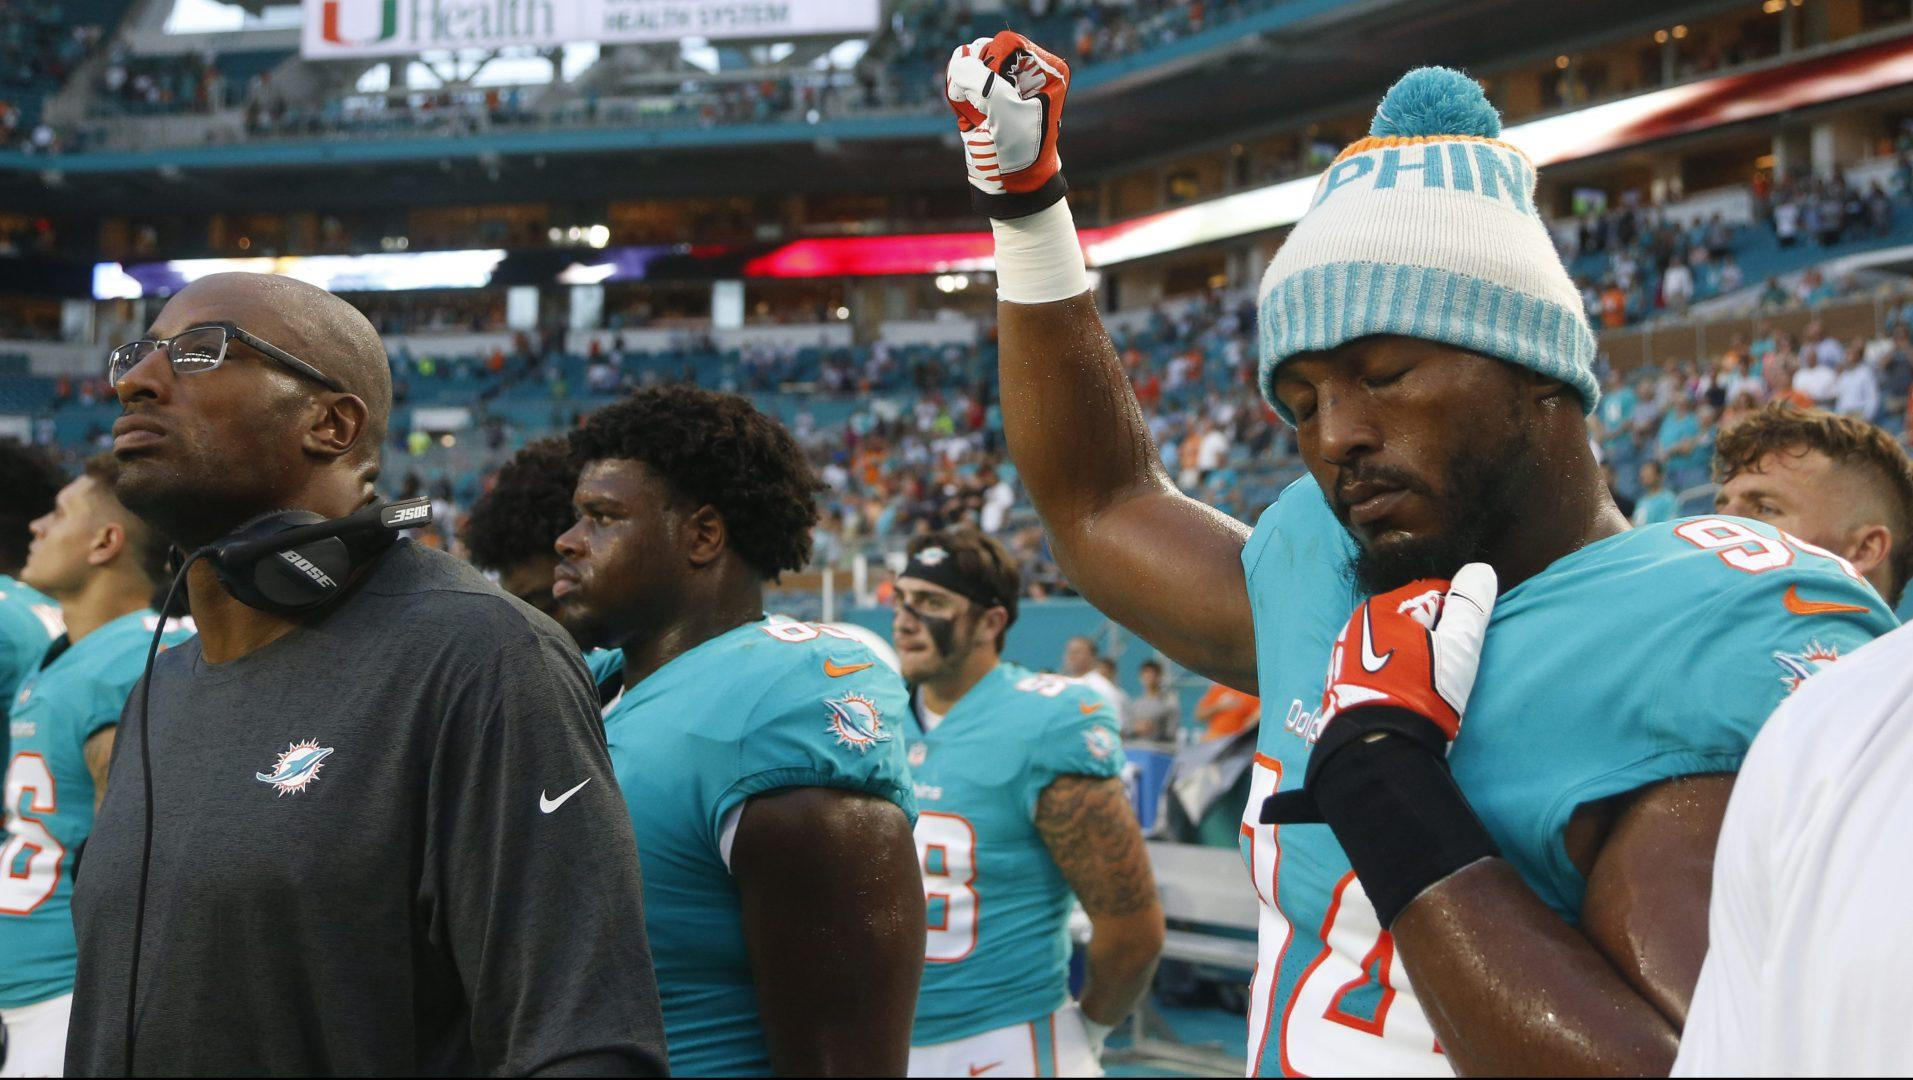 Police unions pull out of Dolphins game over anthem issue